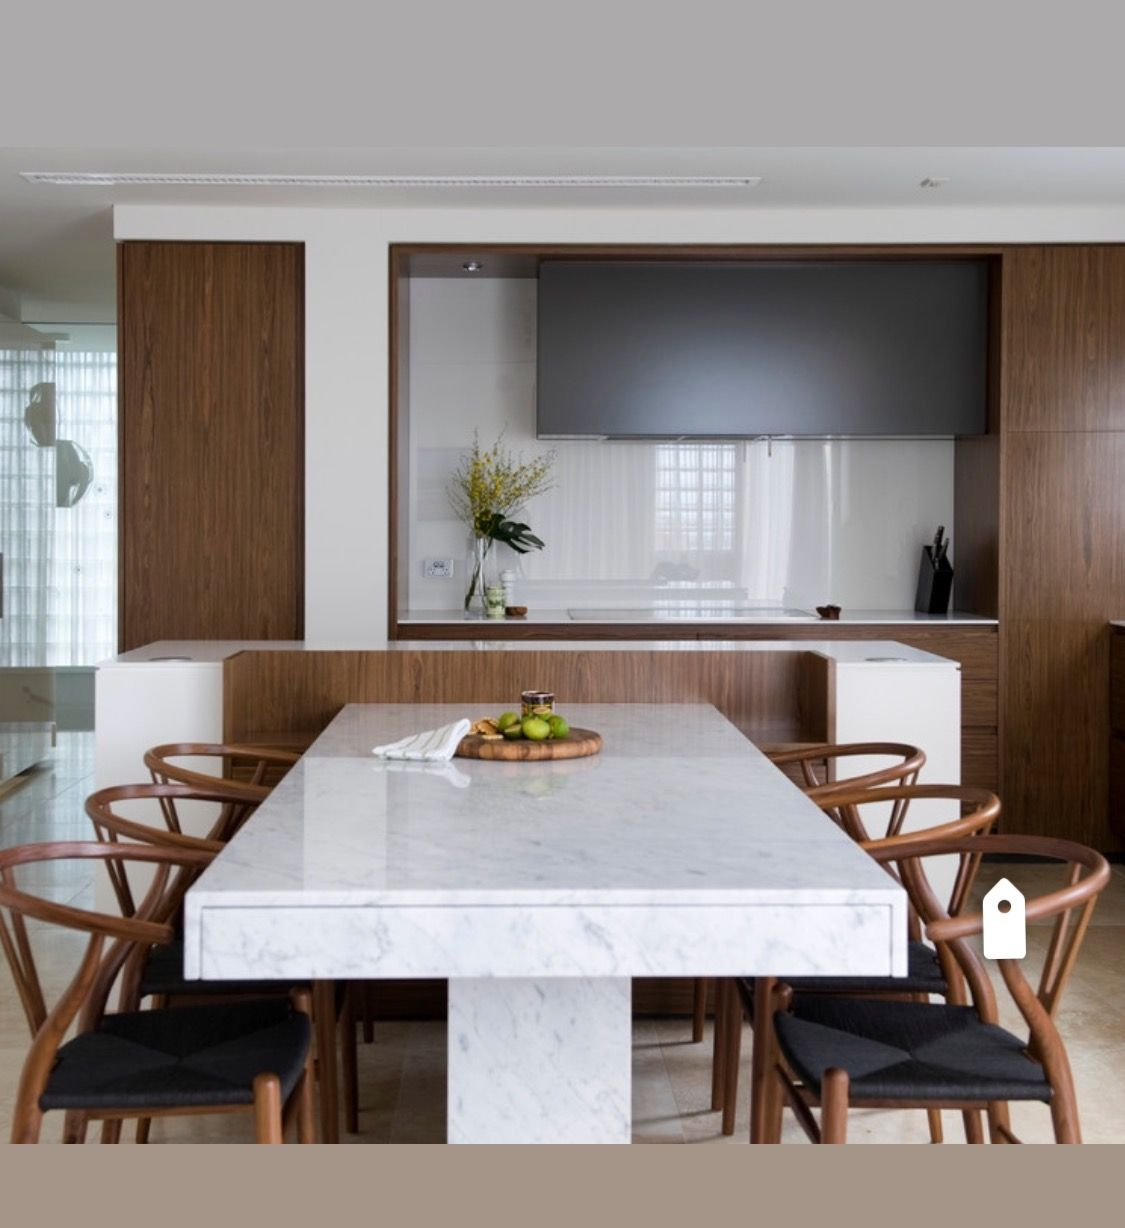 Pin By Cindy Windsor On Np Dining Minimalist Dining Room Dining Table Marble Kitchen Island With Seating